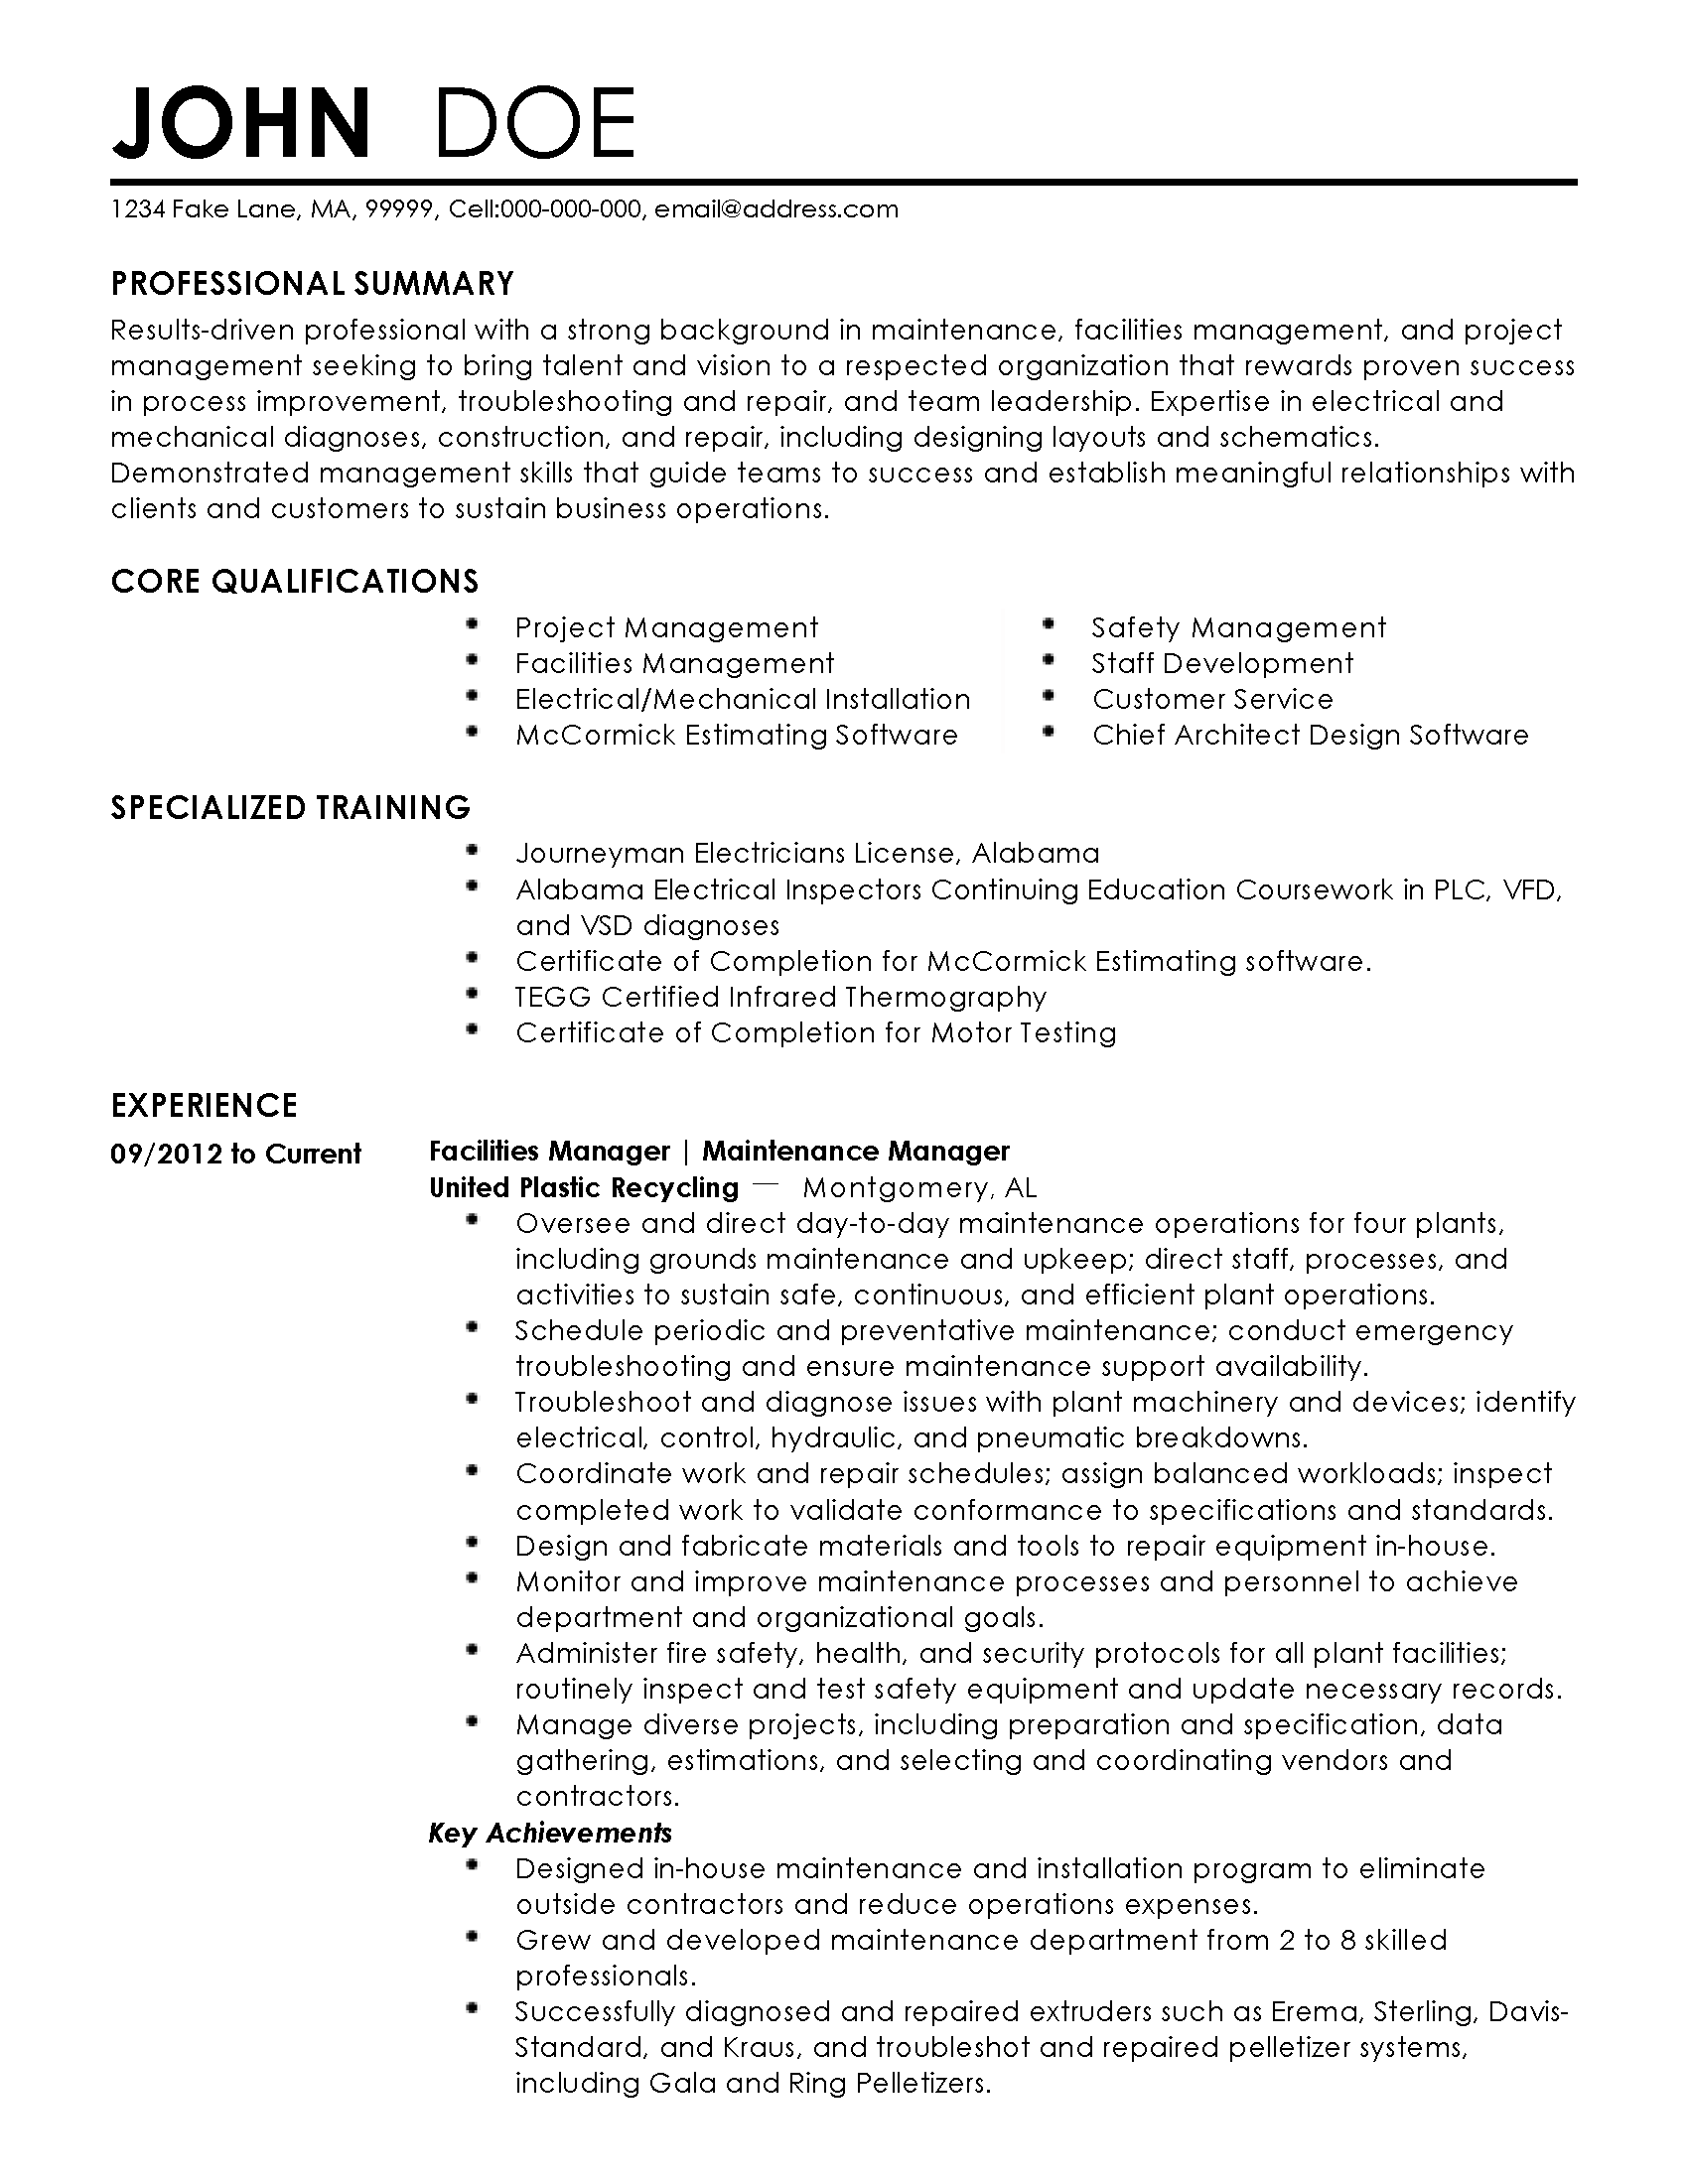 Resume Templates: Facilities Manager